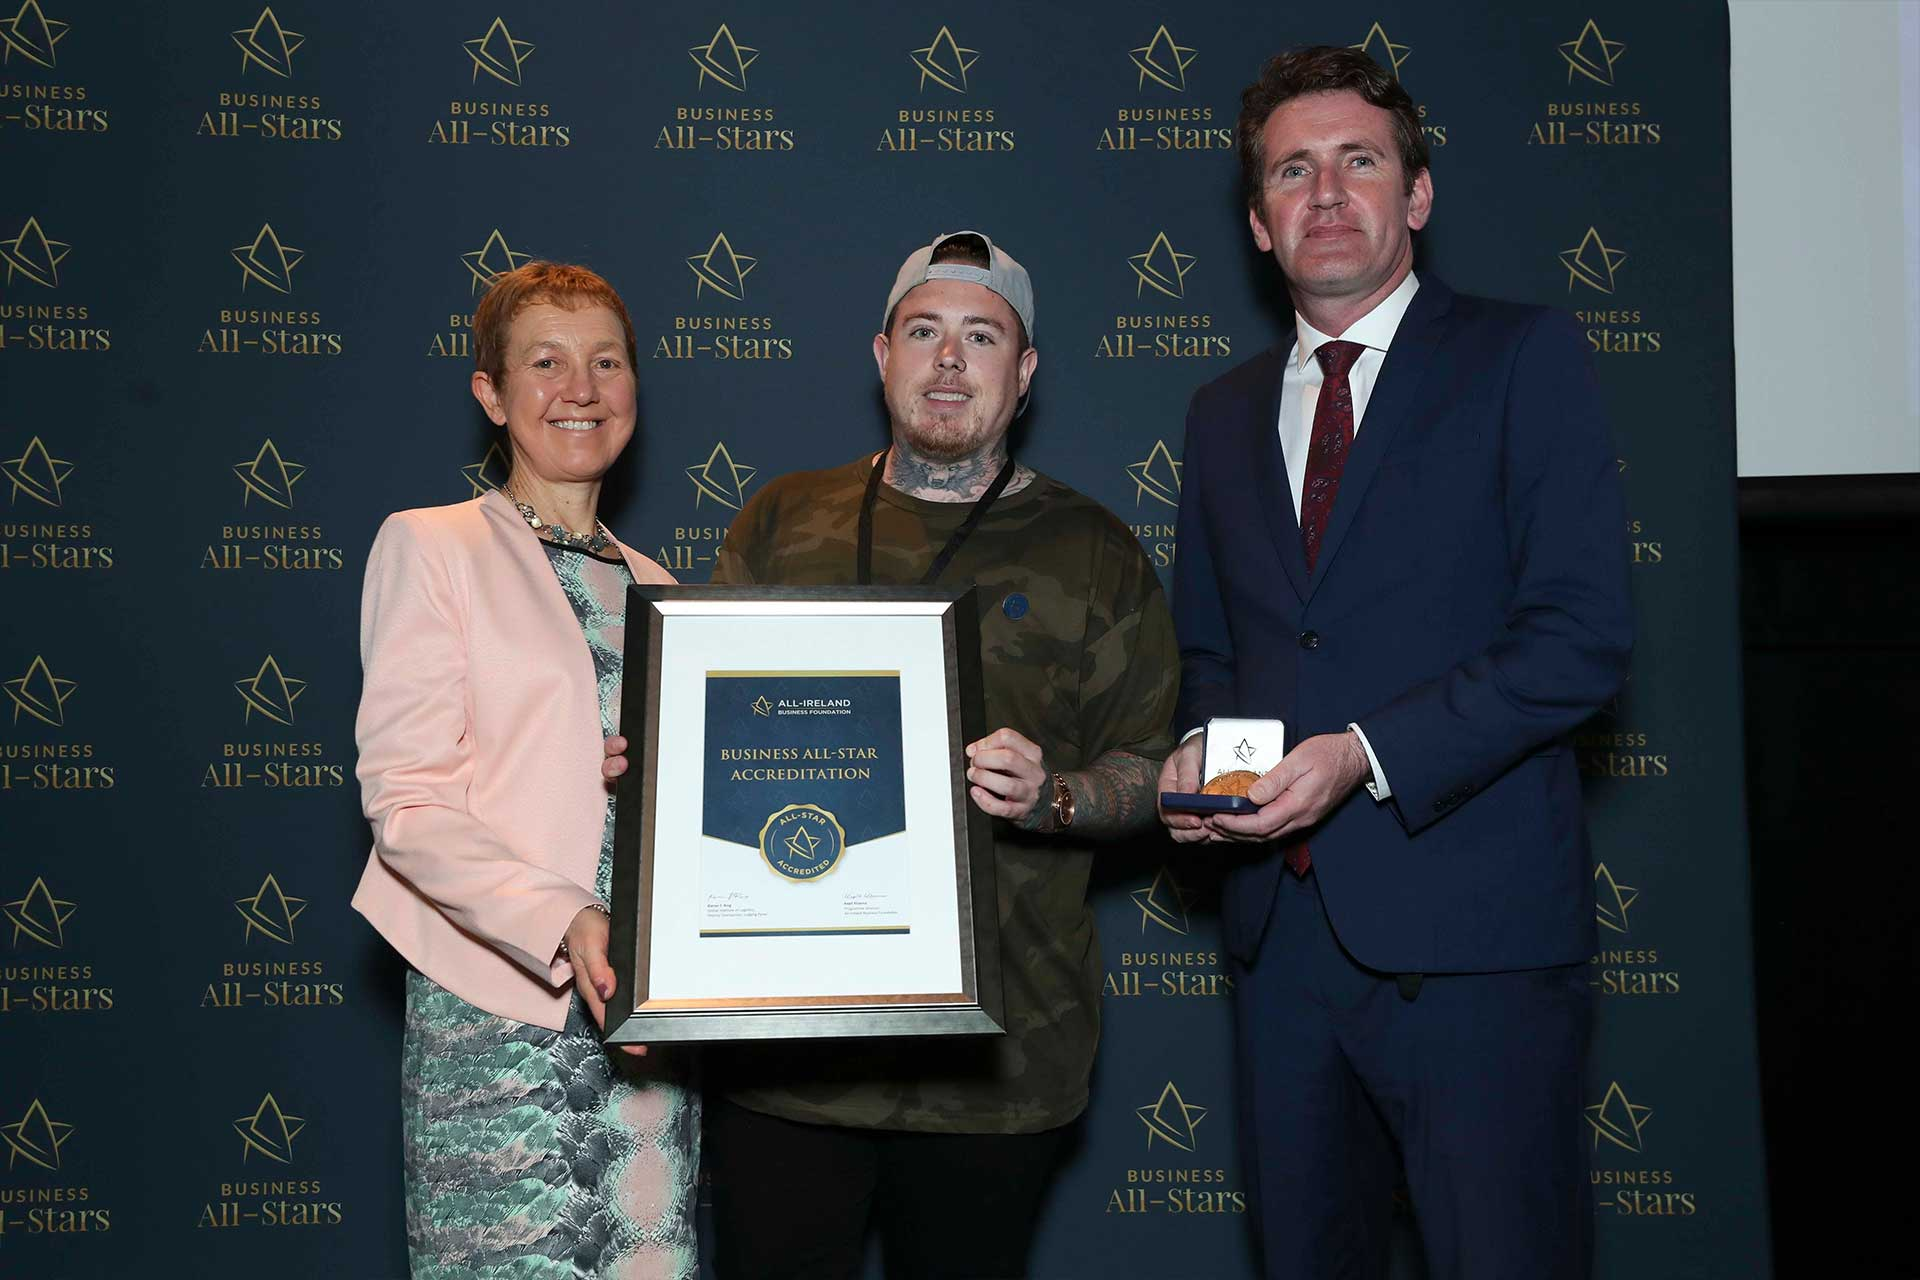 Gerard Burke - Flux Athletic receiving Business All-Star Accreditation at Croke Park from Dr Briga Hynes, Kemmy Business School, University of Limerick and Senator Aodhán Ó Ríordáin, Spokesperson on Education and Skills, Gaeilge and the Gaeltacht.